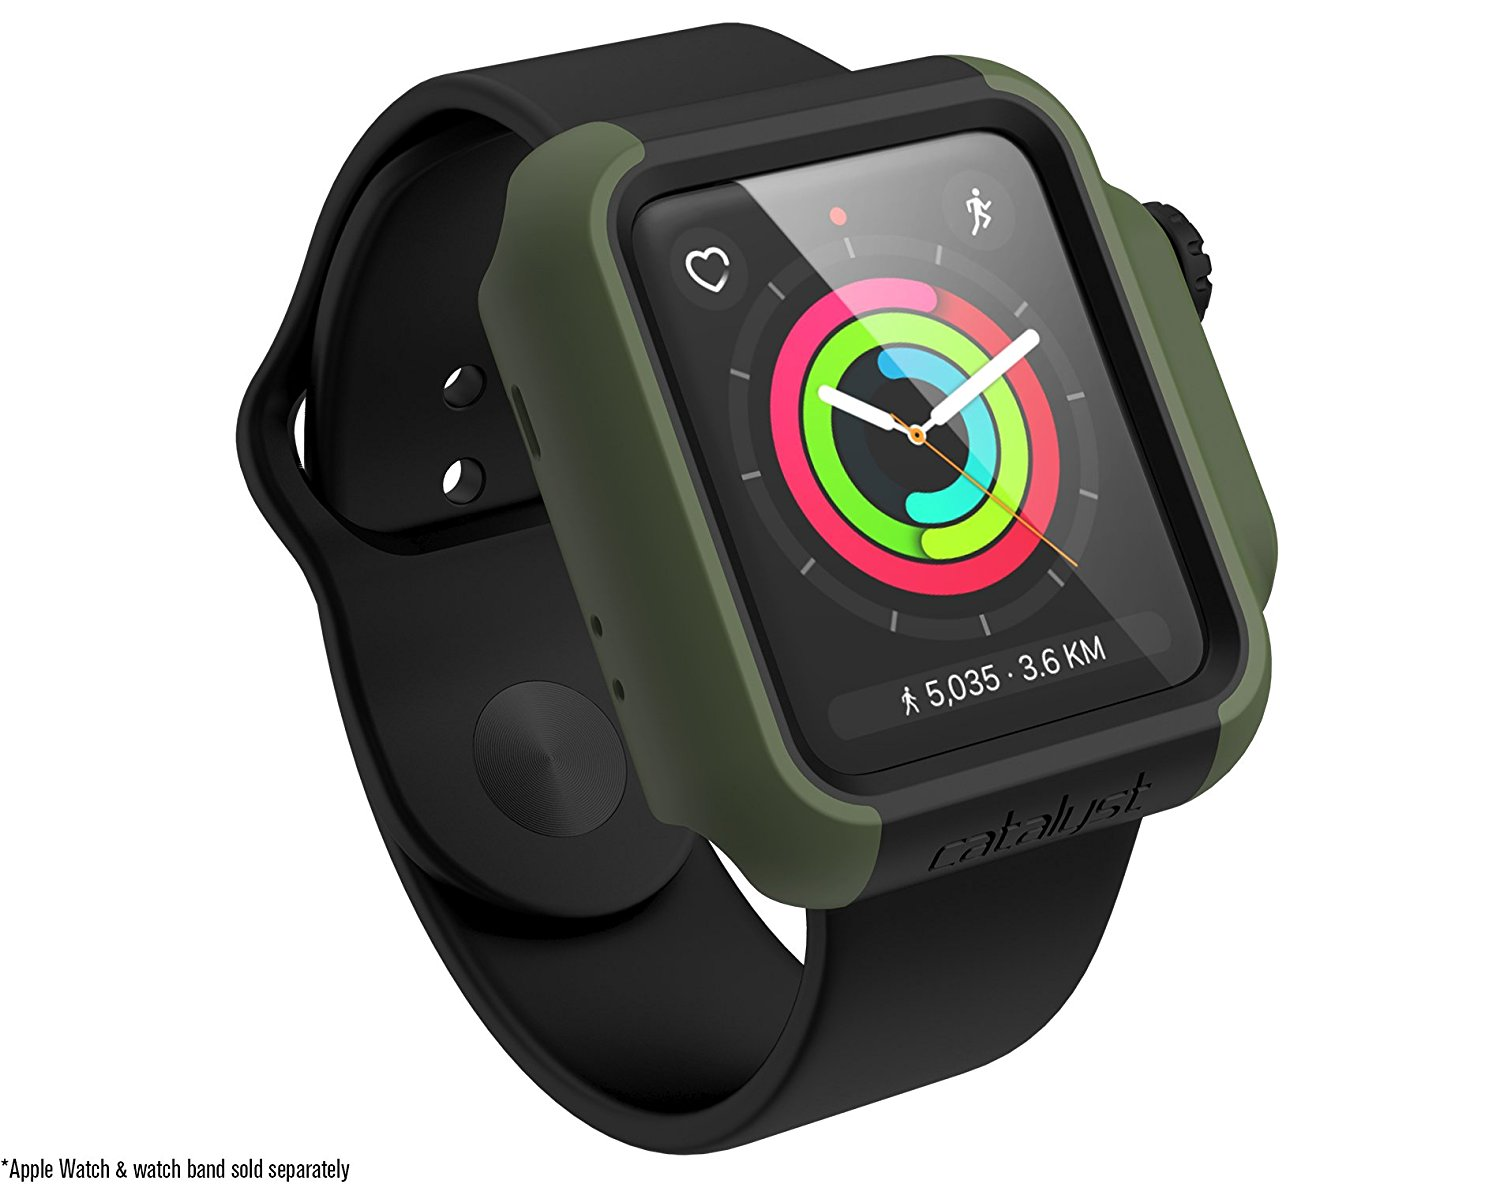 Catalyst Θήκη Impact Protection για Apple Watch 42mm Series 3/2 - Army Green (CAT42DROP3TGRN)